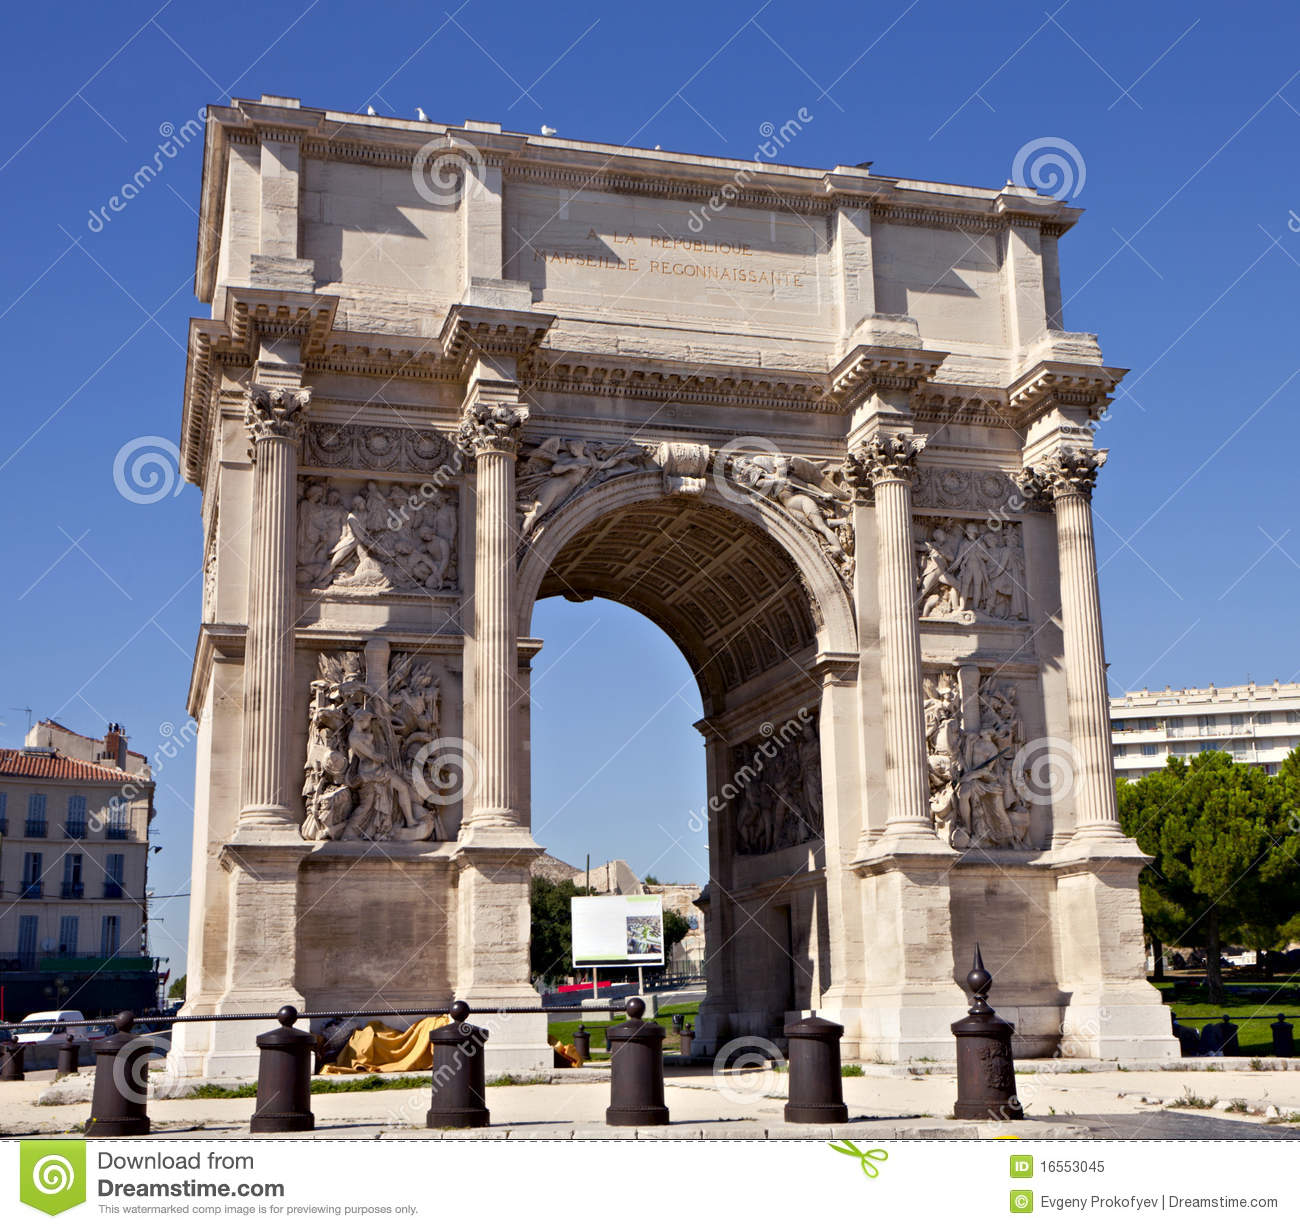 Porte royale triumphal arch in marseille royalty free for Porte 4 marseille